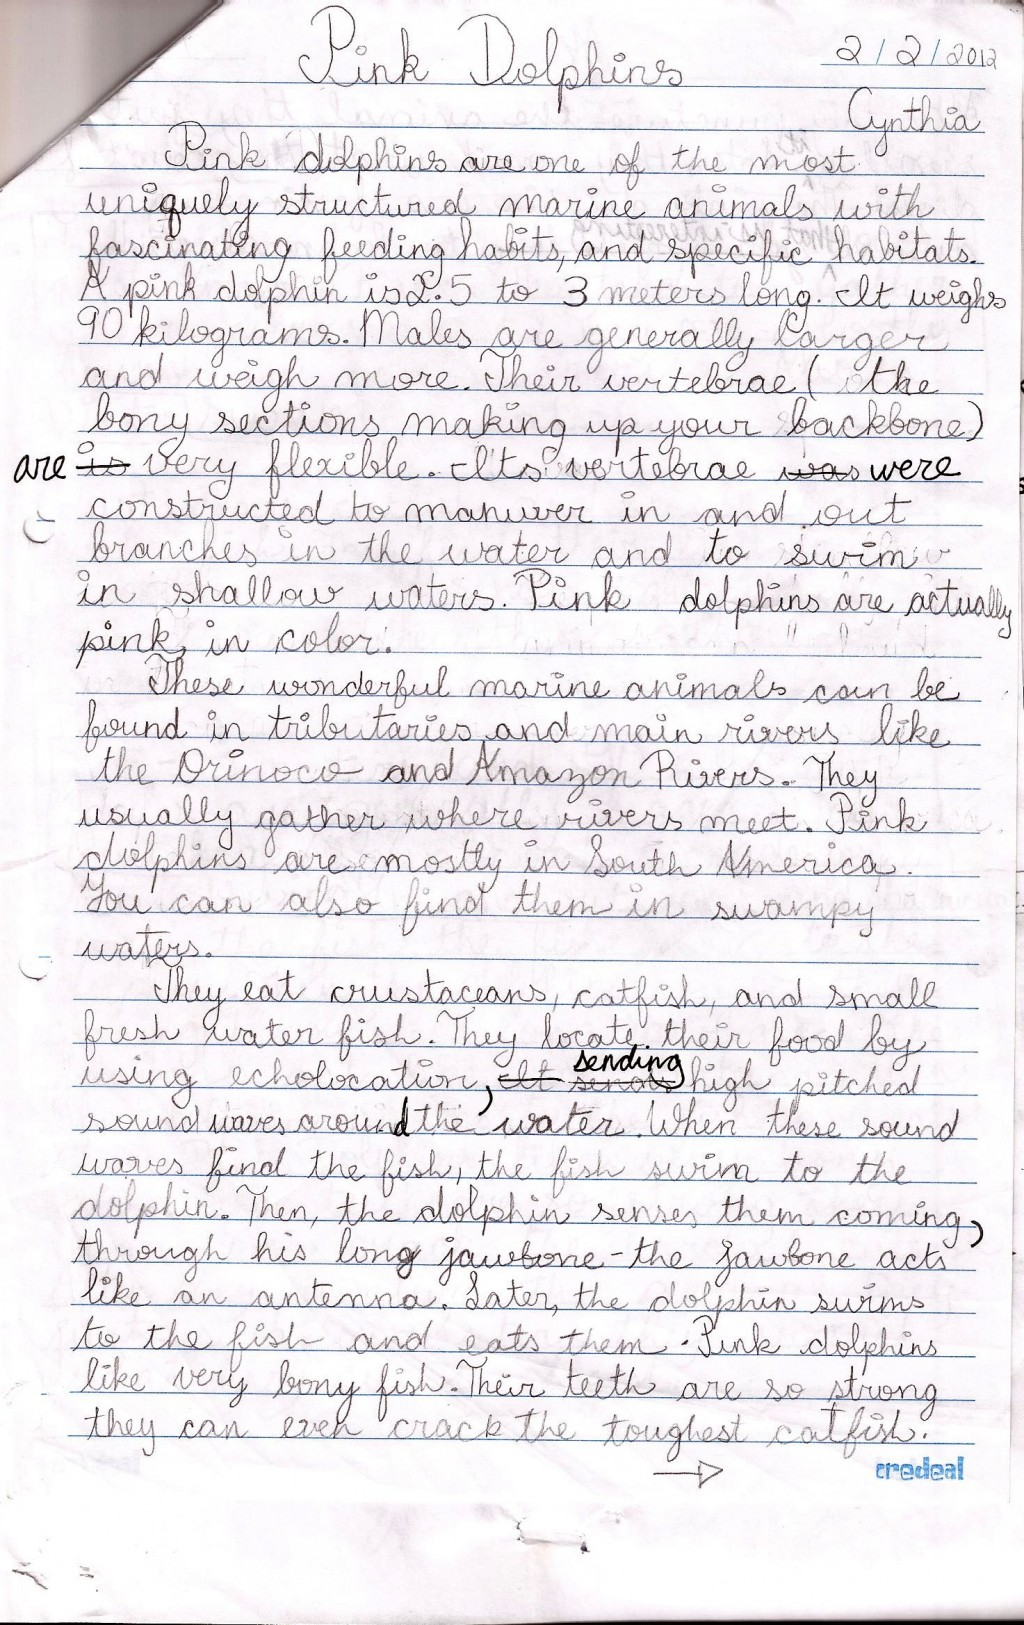 011 Essay Example Pink Dolphins Handwritten Draft Topics For Grade Marvelous 5 Writing Students Persuasive 5th English Question Paper Cbse Large